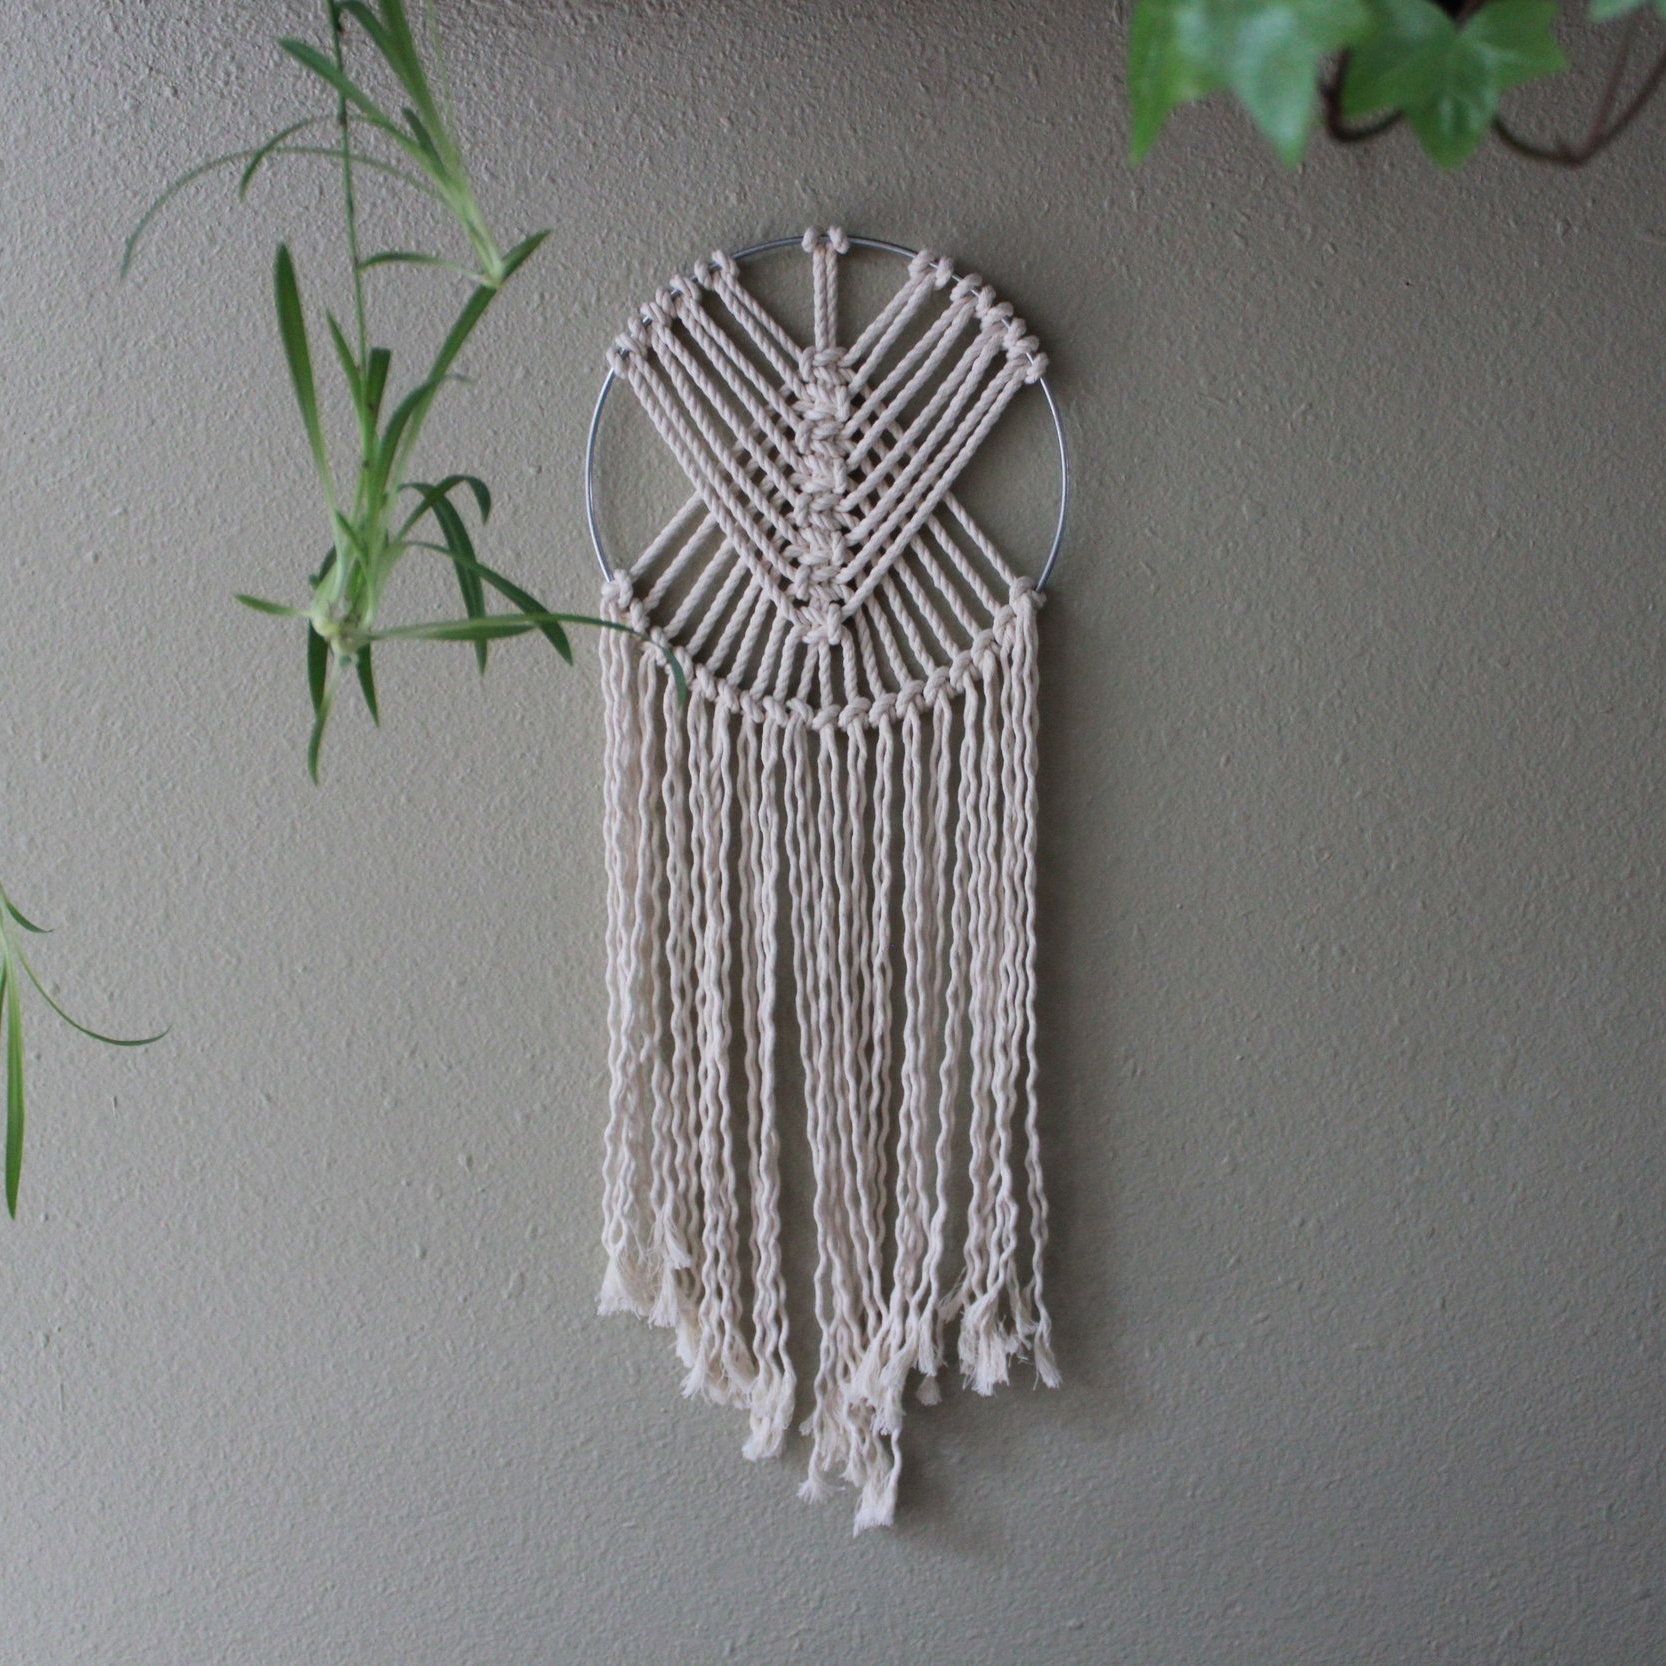 MACRAMÉ WALL HANGING - 2 - 3 HOURS